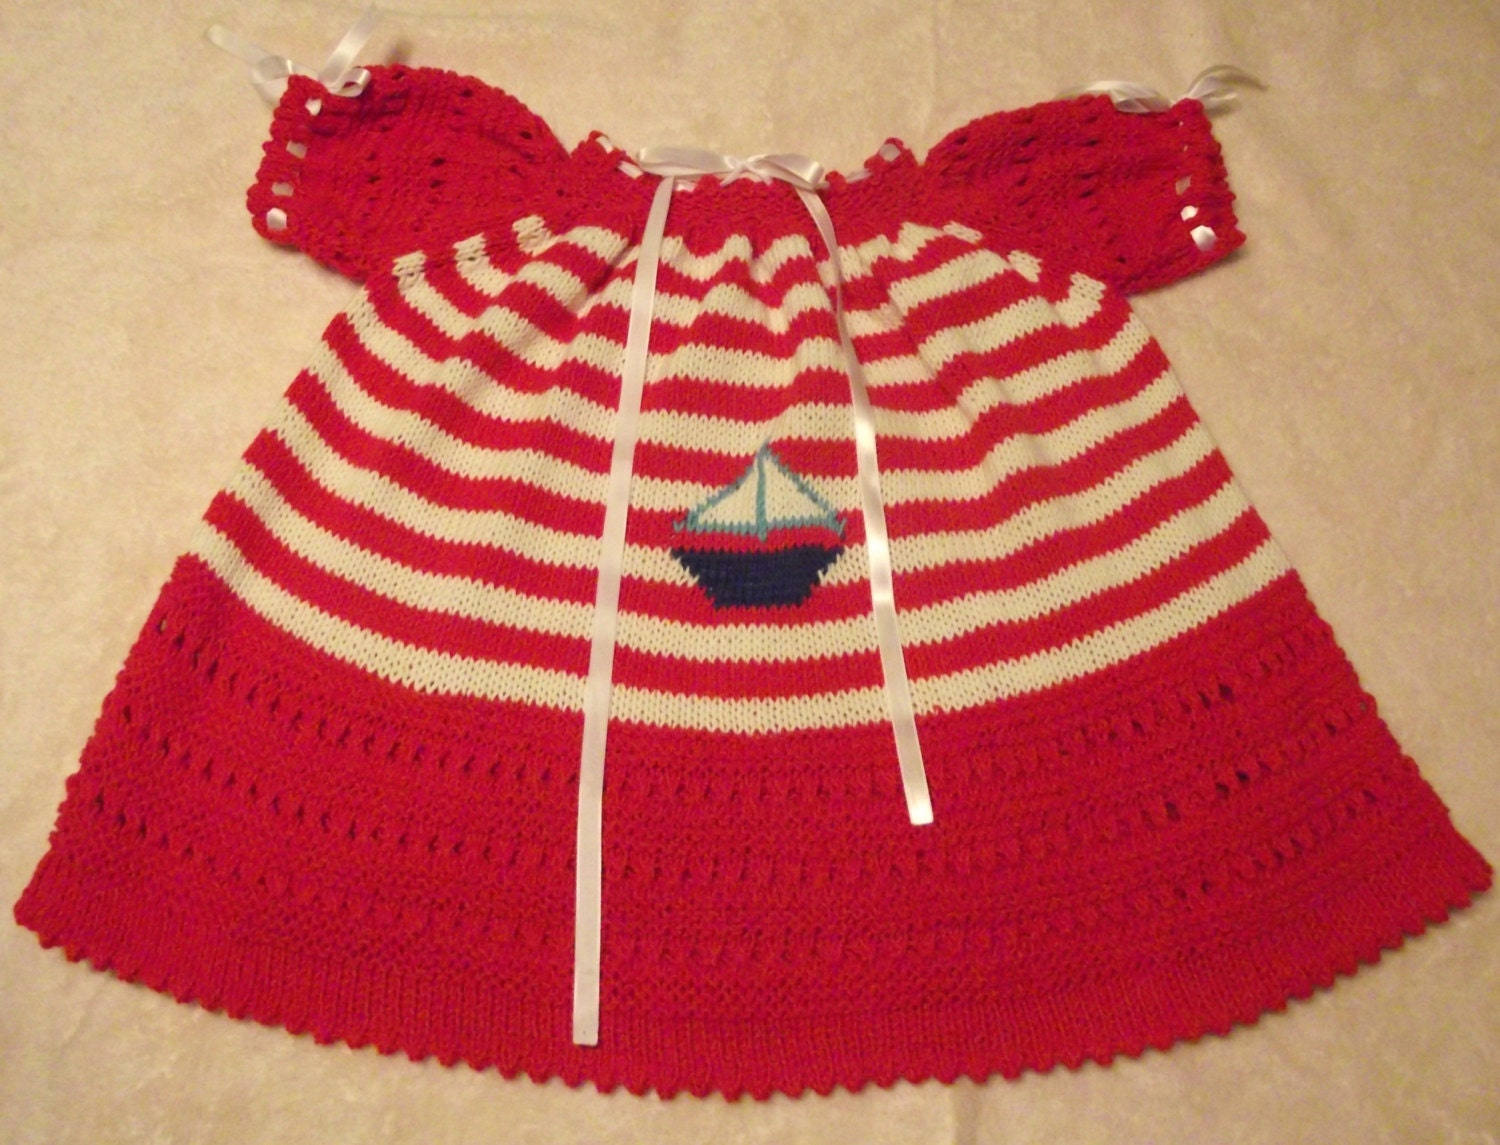 Hand Knitted Dress Patterns : Hand Knitted Cotton Baby Dress Marine Pattern